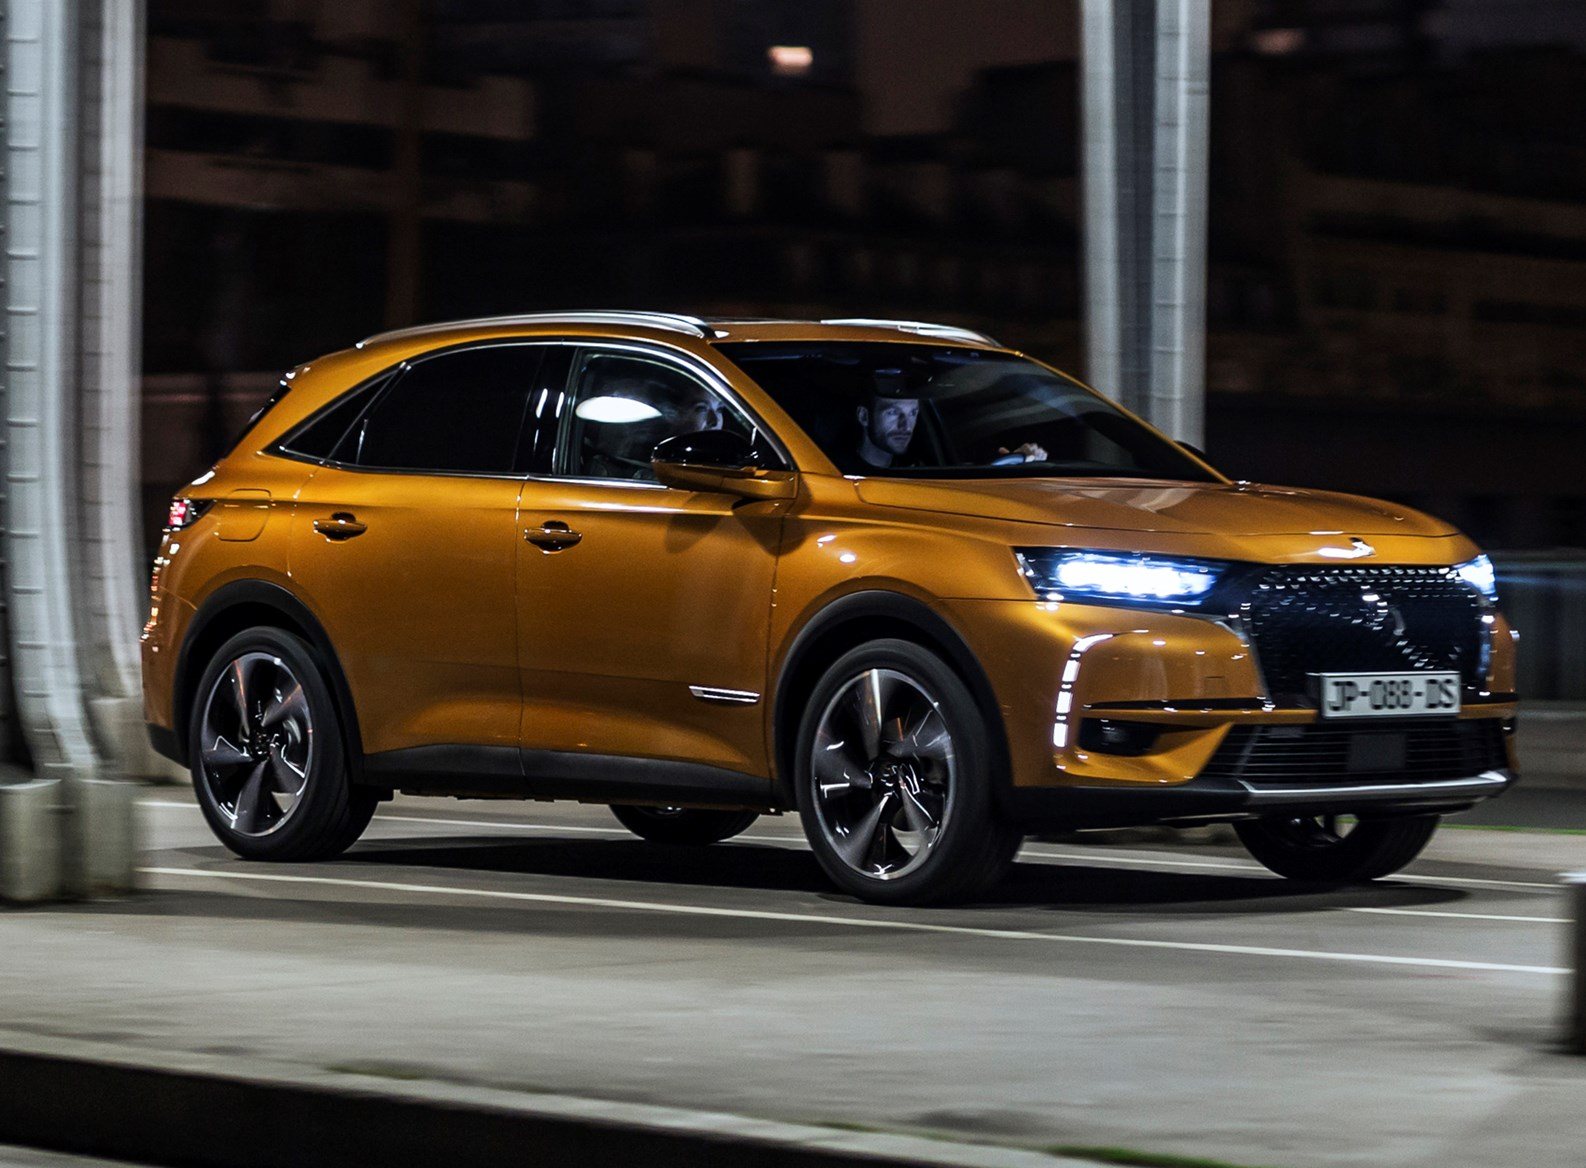 DS 7 Crossback SUV (2018 - ) Photos | Parkers